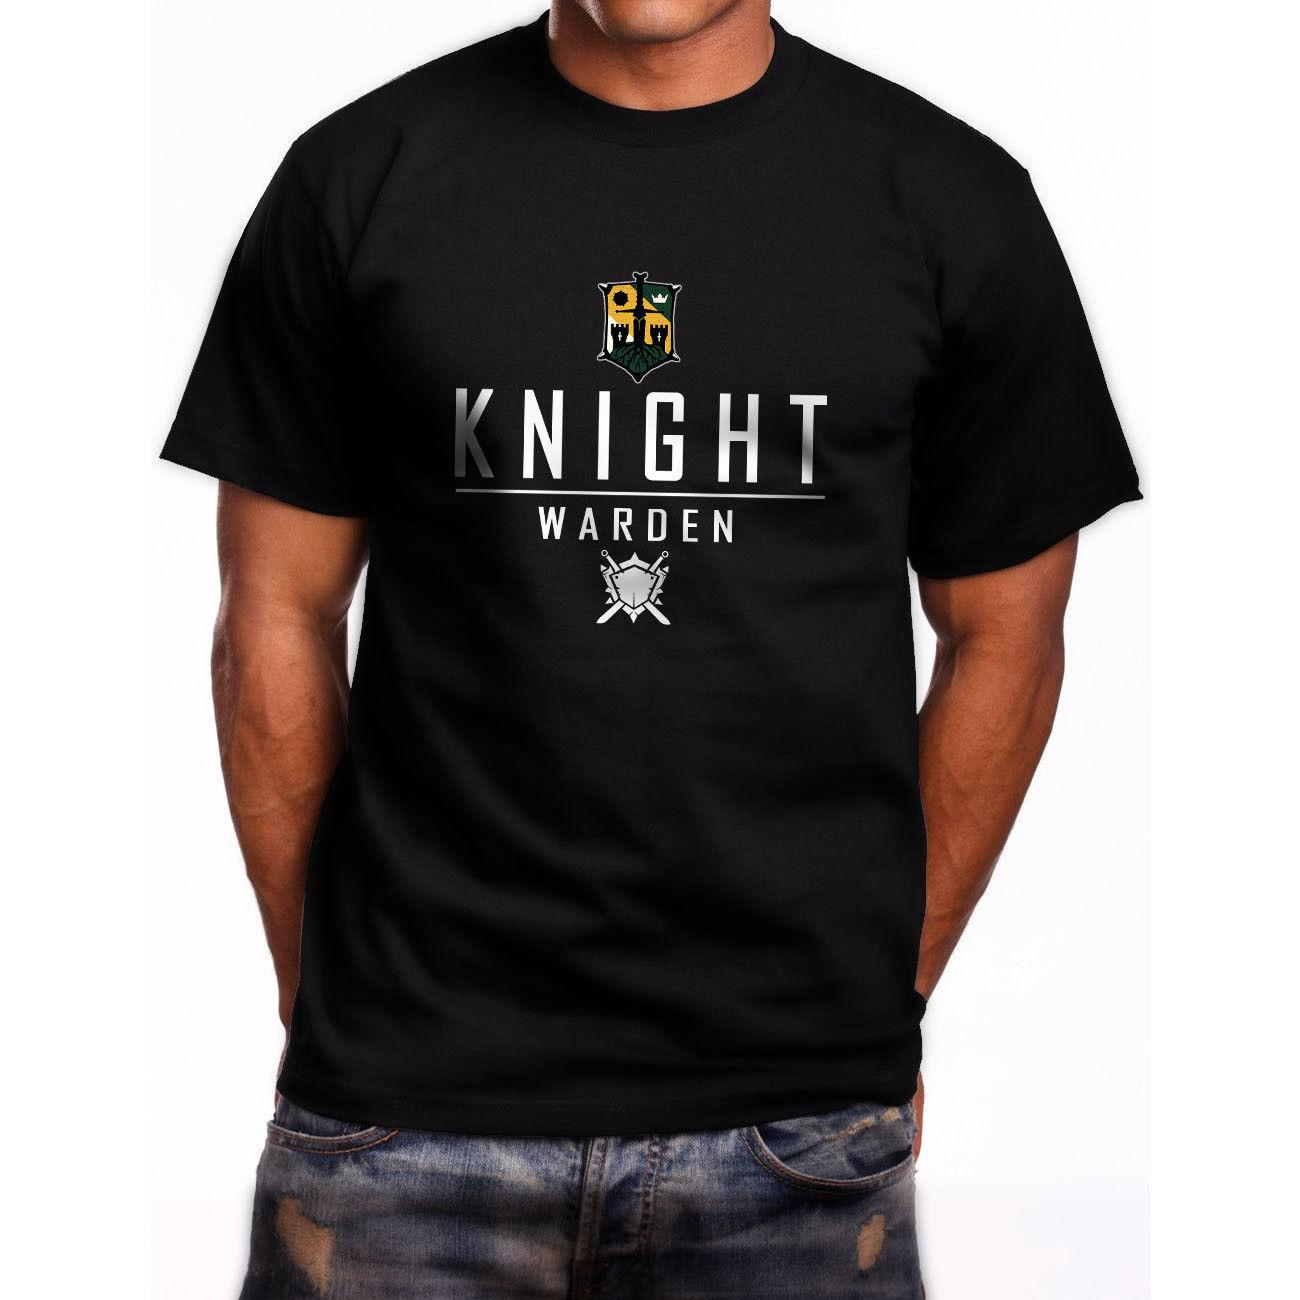 cc77381e8 For Honor Gaming Hoodie Knight Warden Short Sleeve Men's Black T-Shirt  S-5XL 2018 Funny Tee Cute T shirts Man 100% Cotton Cool